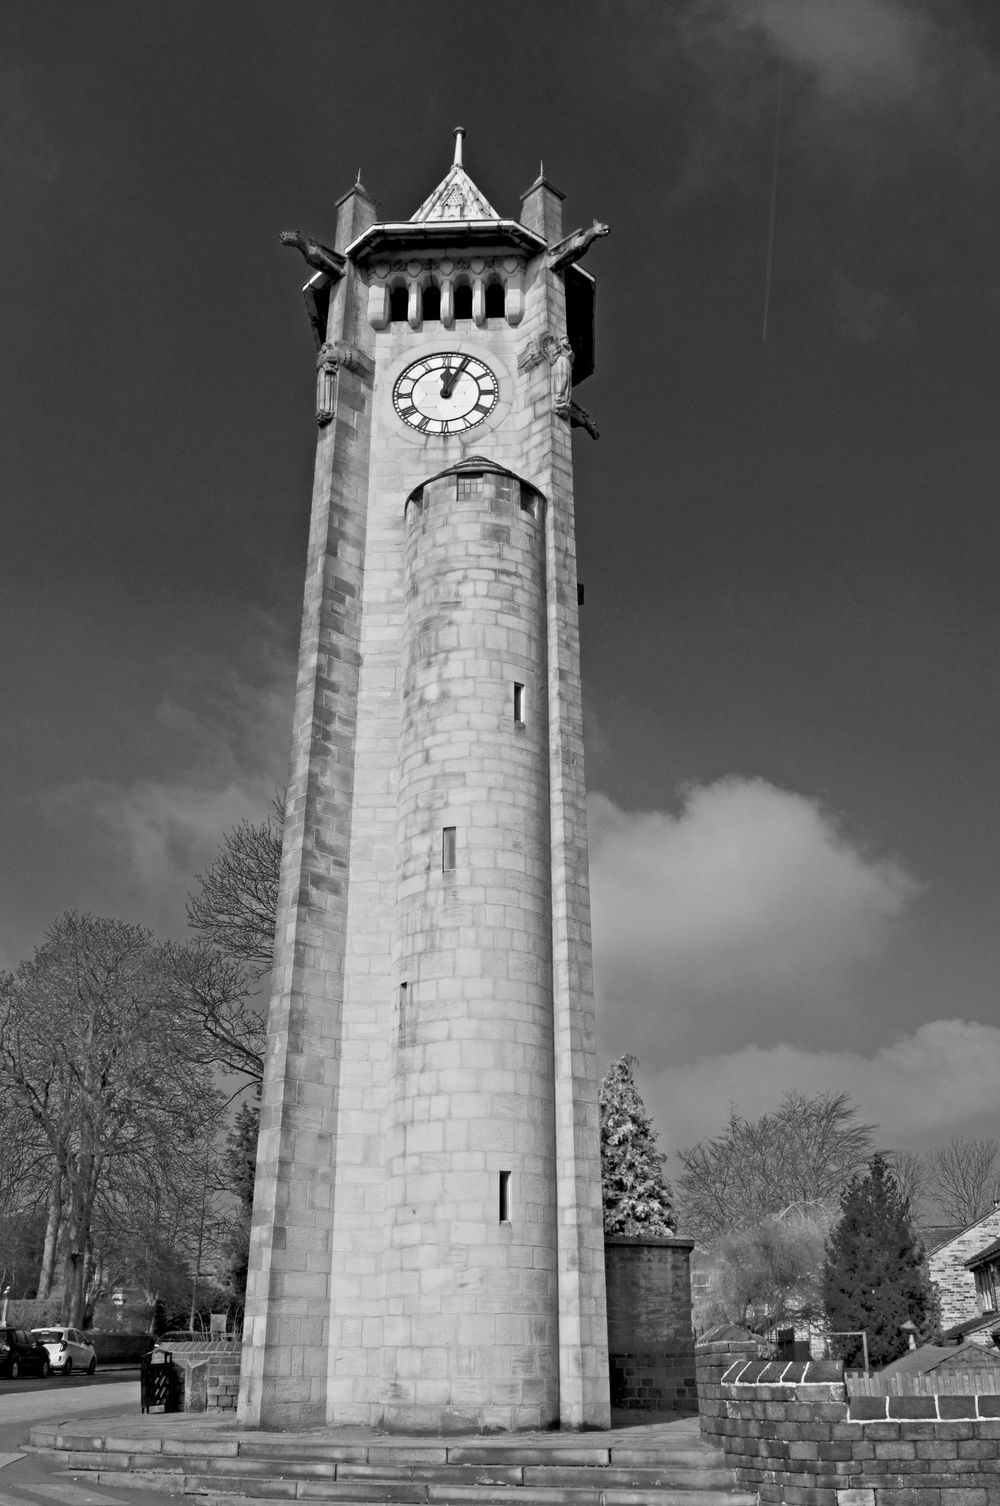 Lindley Clocktower